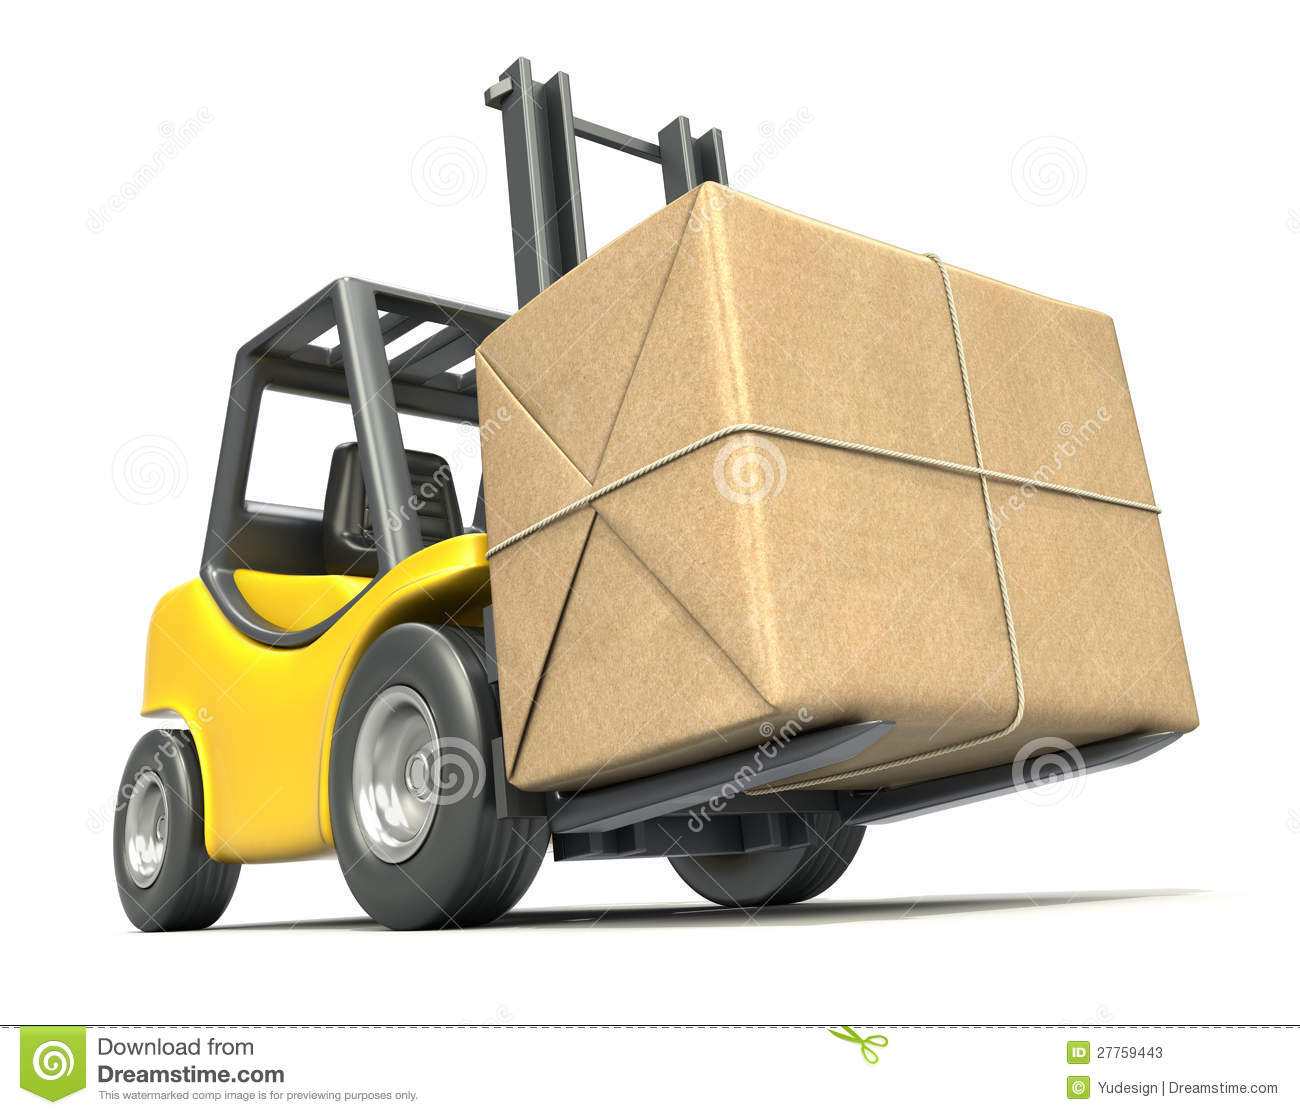 Forklift With Post Package Stock Photos   Image  27759443